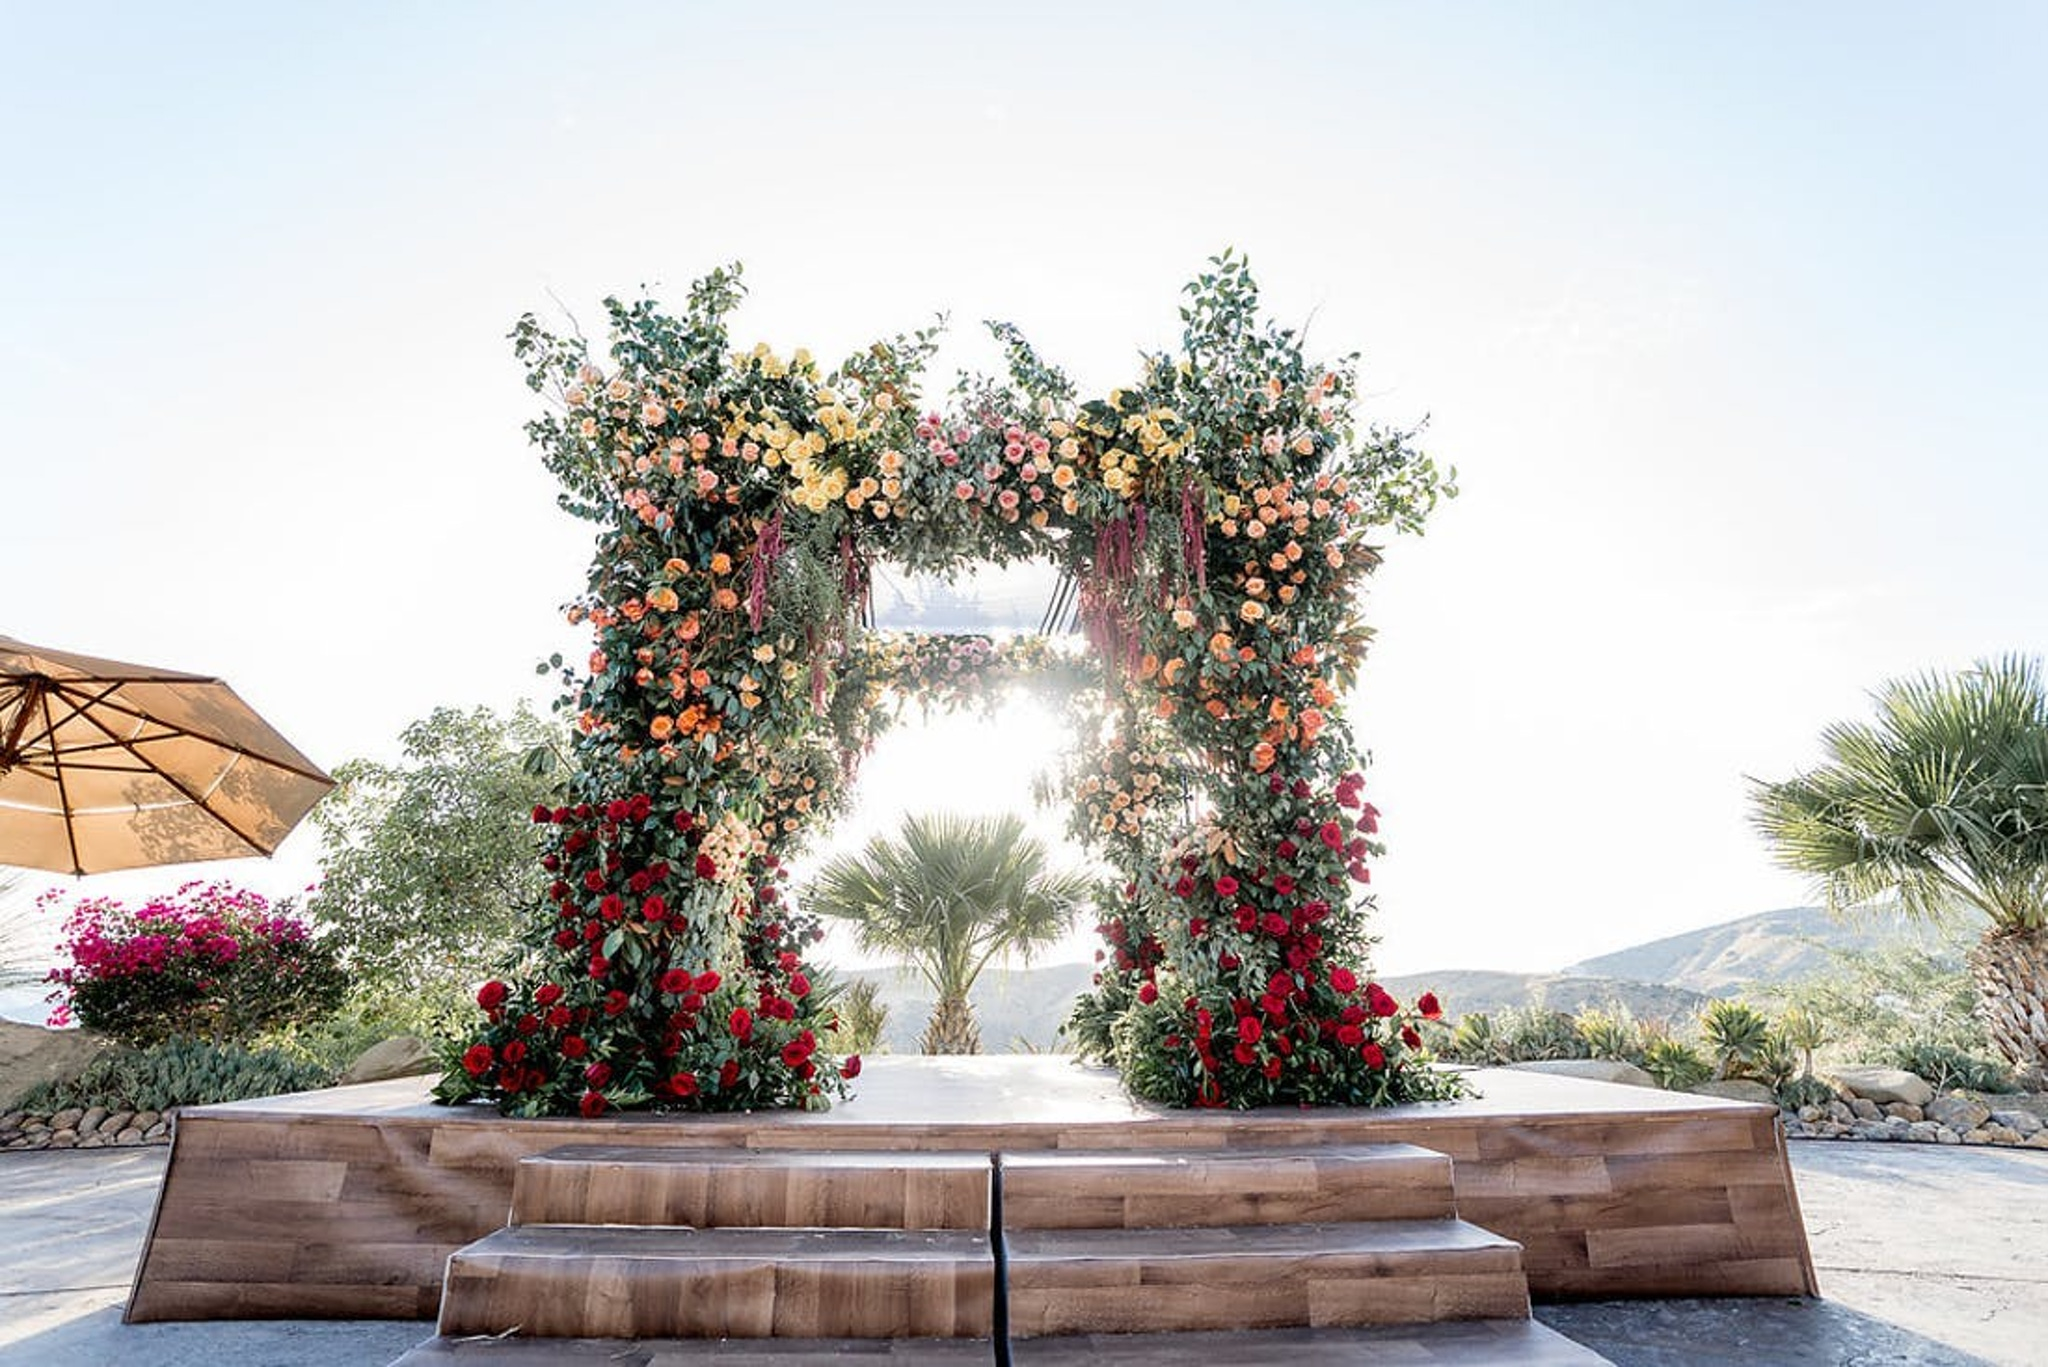 wedding ceremony outdoor floral arch with red, orange and yellow florals combined with greenery for a fall-inspired look